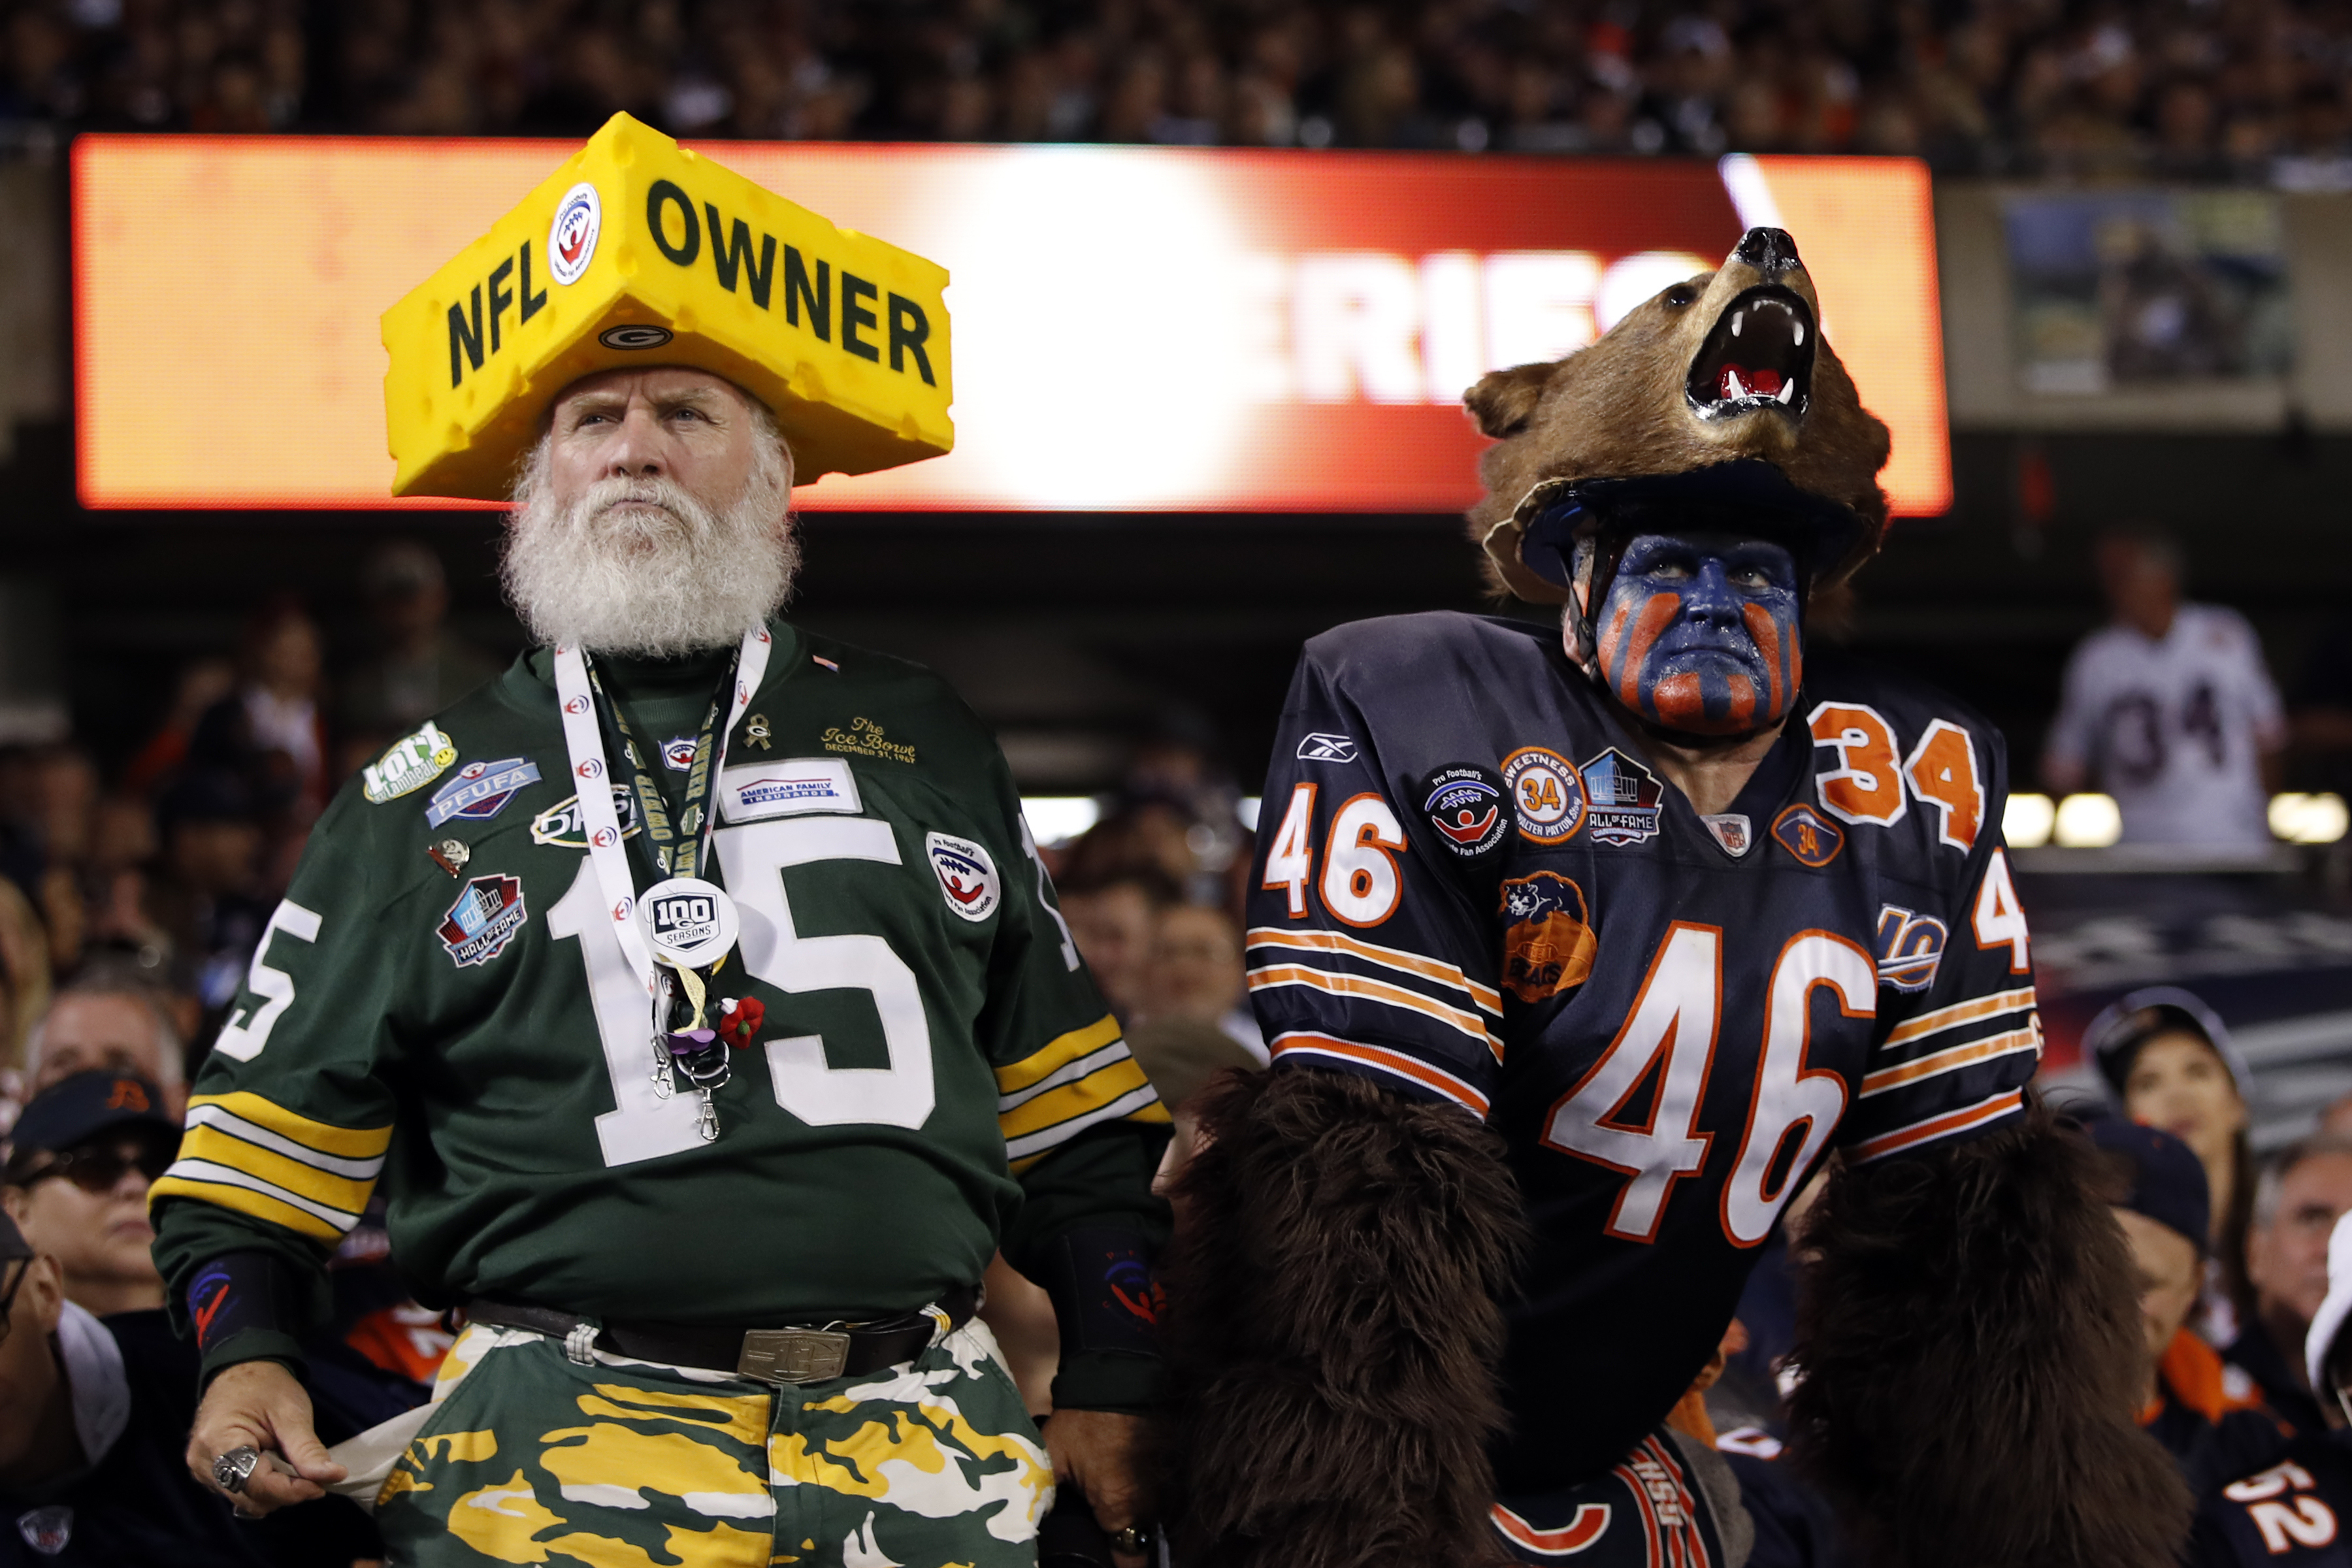 Packers and Bears fans watch the Week 1 game at Solider Field on Sept. 5, 2019.